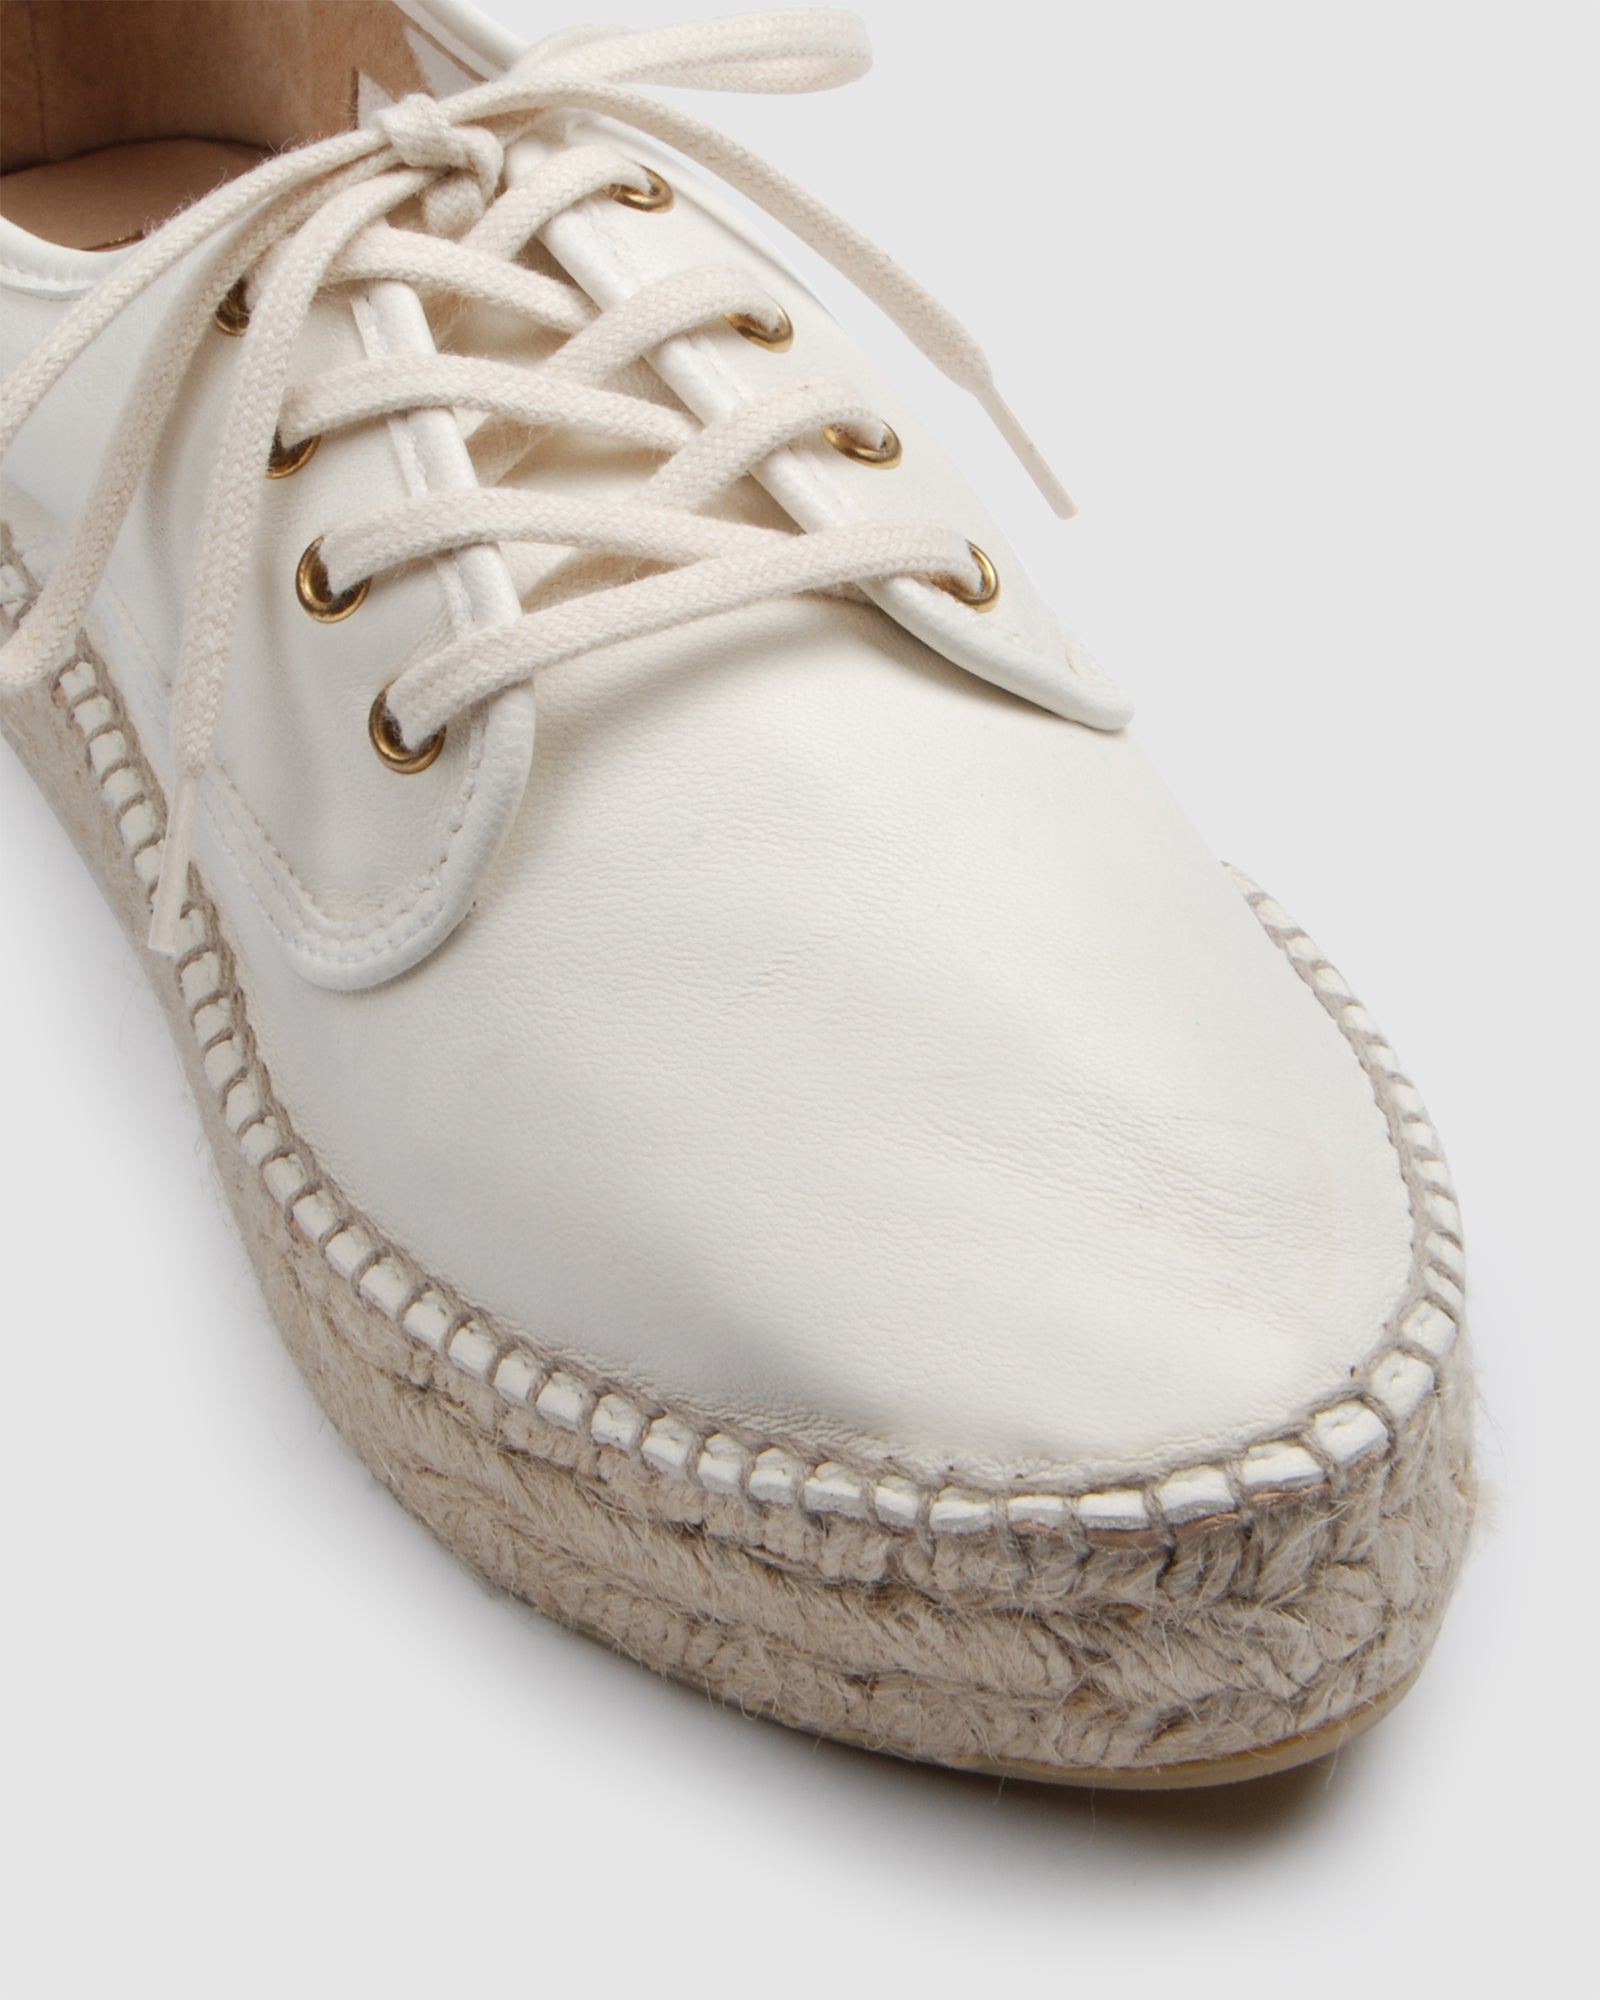 ROXY LACE UP ESPADRILLES WHITE LEATHER